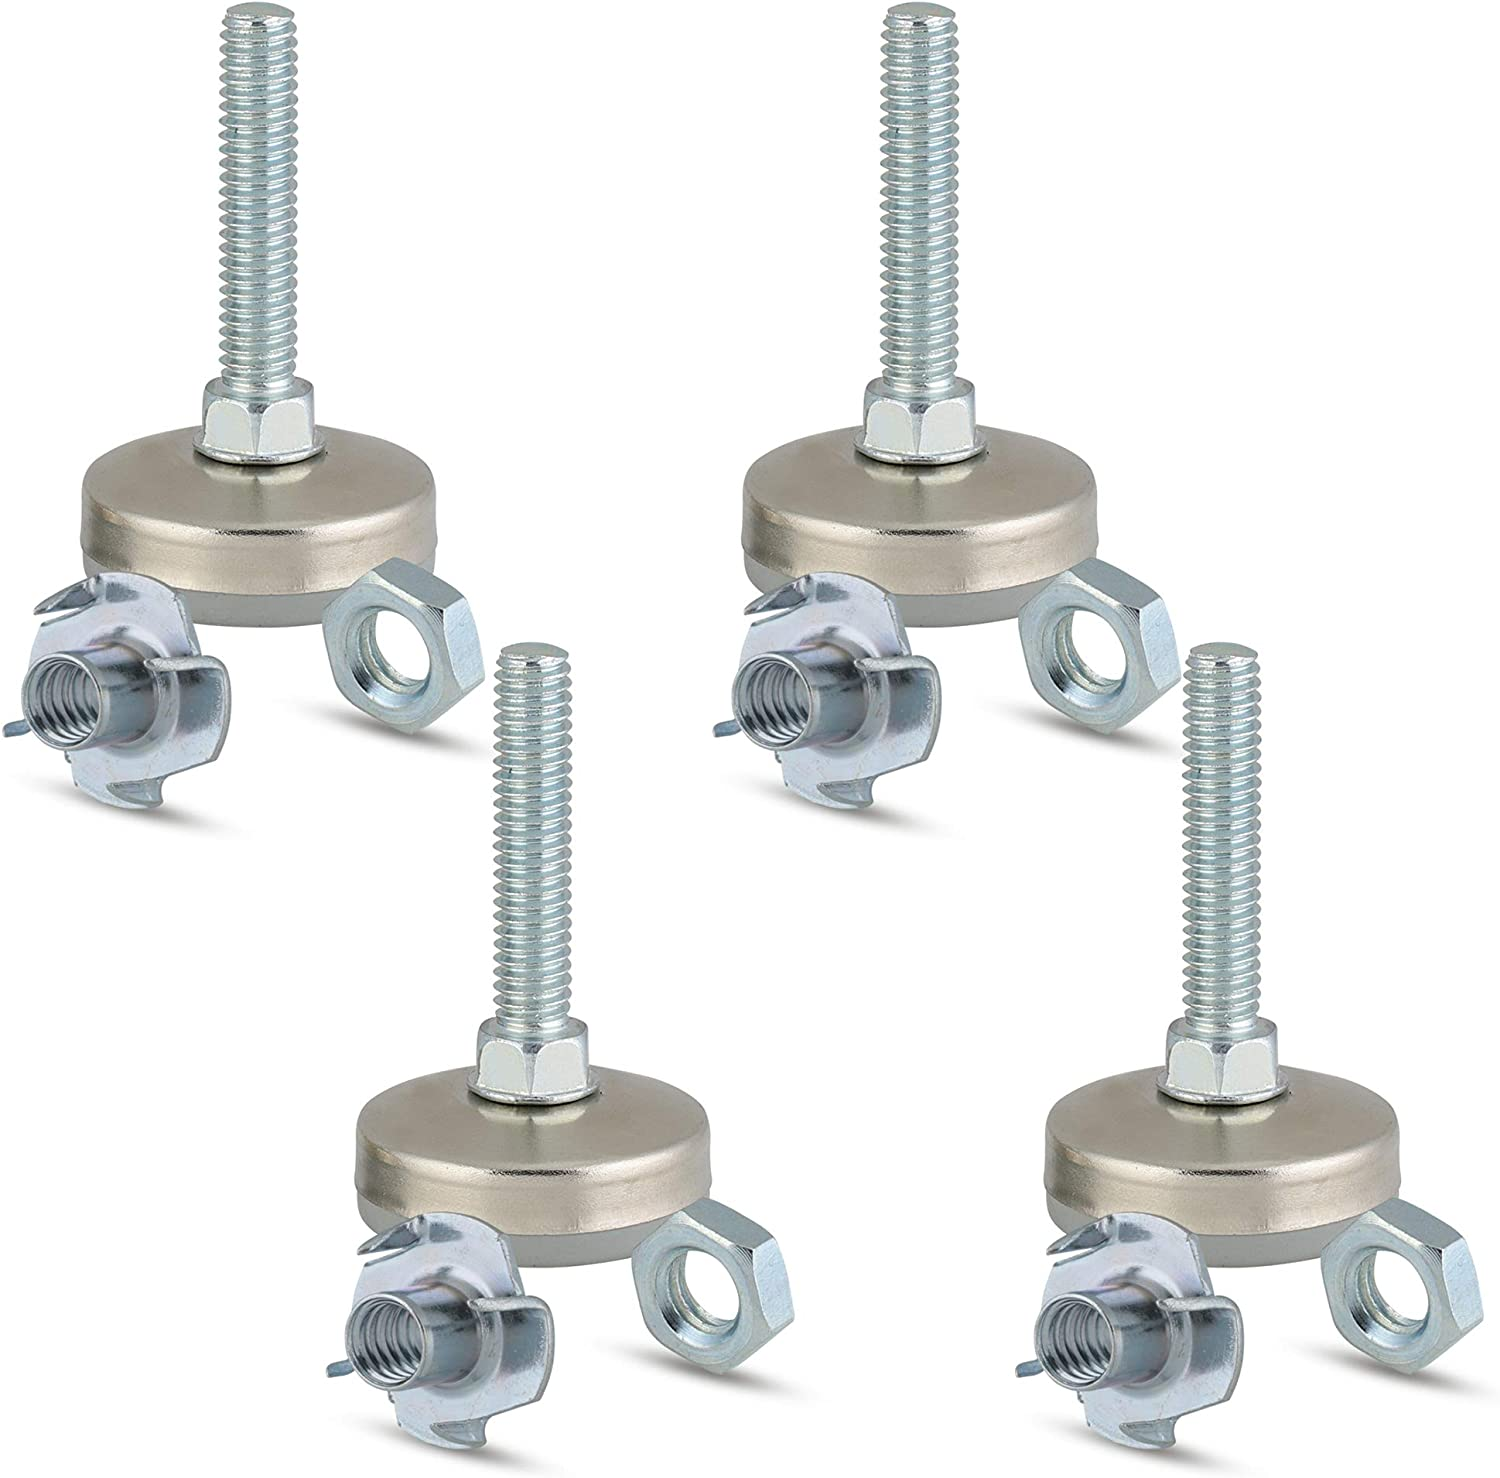 Furniture Leveler and Tee Nut Kit, Leveling Feet for Tables, Chairs, and Cabinets, 5/16-18 Inch Tread Size, 1 3/8 Inch Non Skid Base Diameter, with Jam Nuts (Kit with 4 Prong T-Nuts)